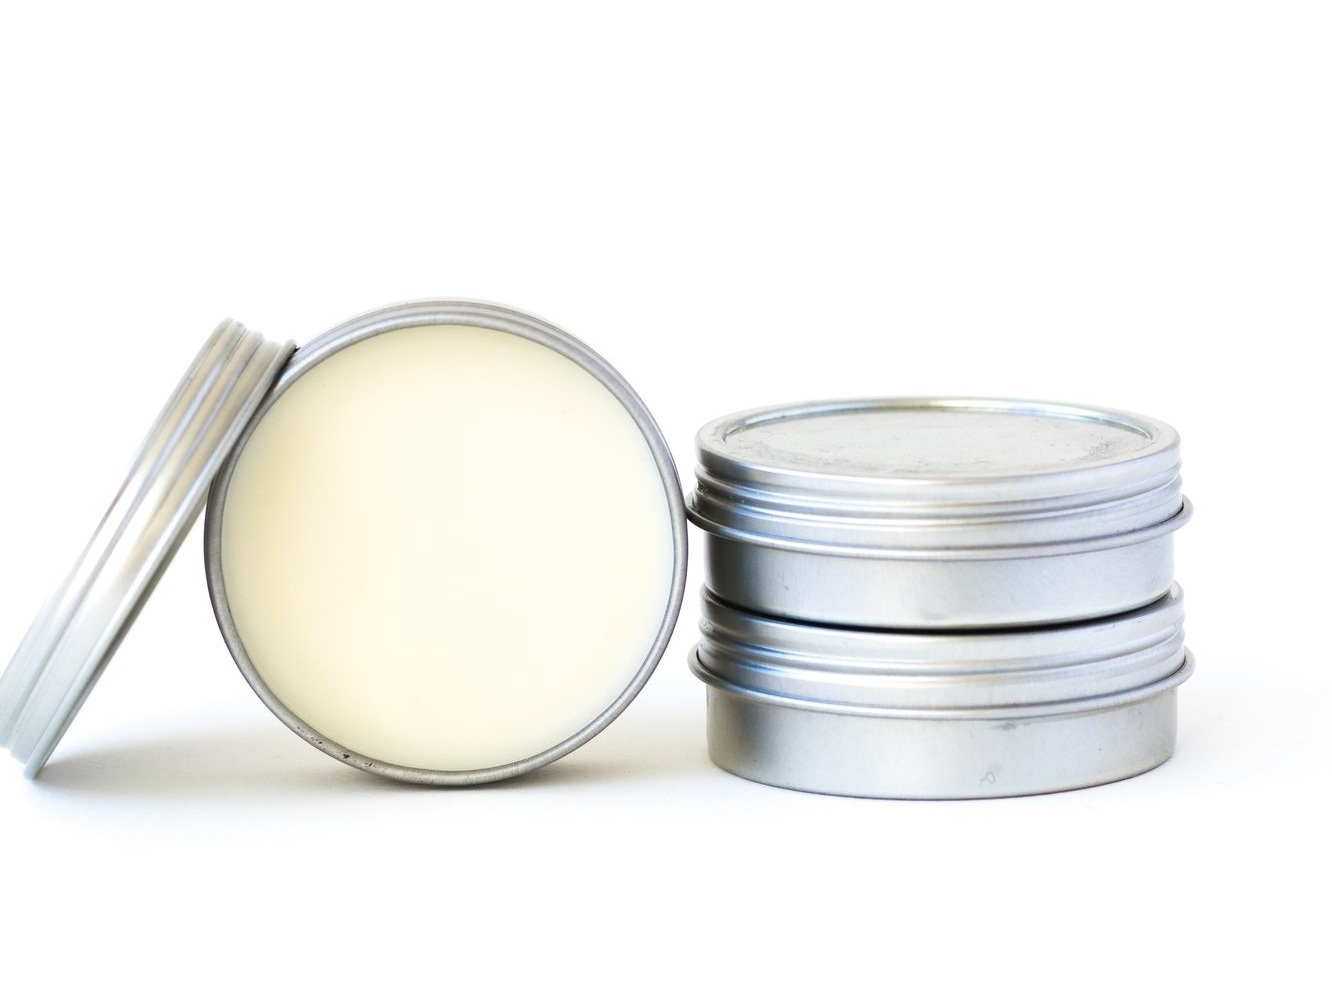 CBD Topicals - Whilst CBD creams, lotions, and balms are obviosuly not ingested, they are becoming more popular for use in skin care or as relief for tired muscles post sports activity.